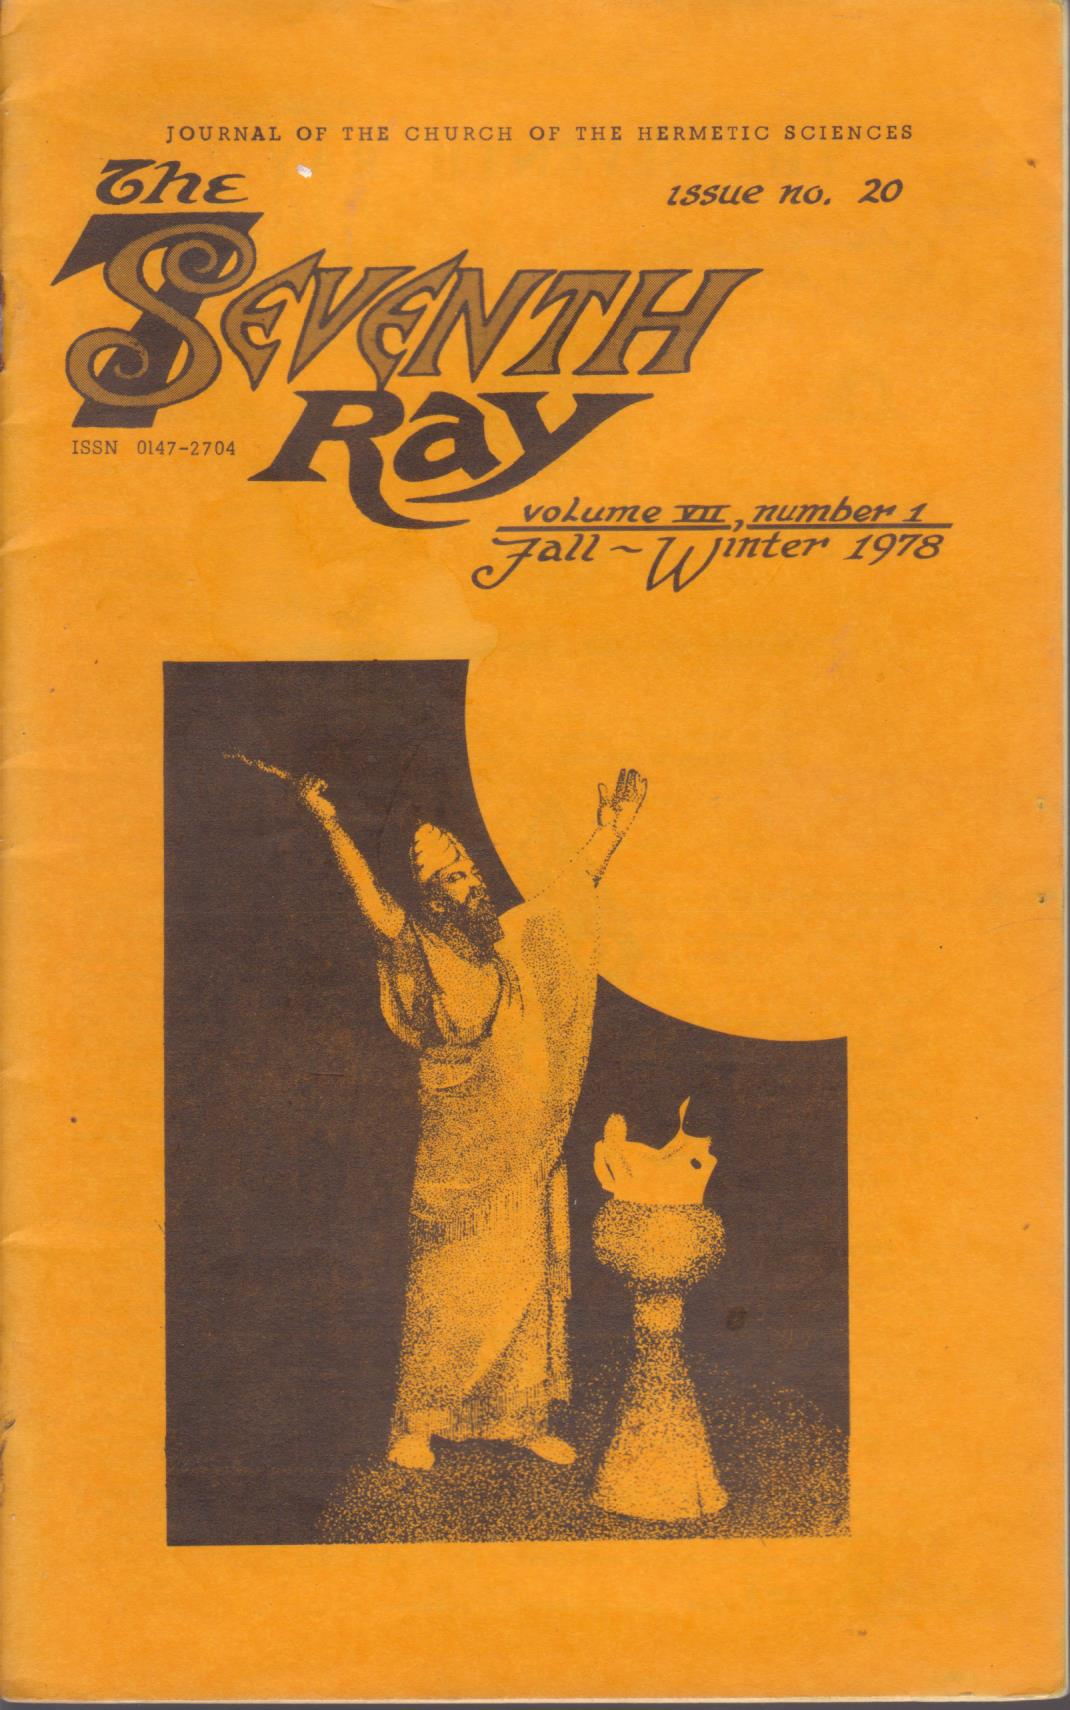 cover image of The Seventh Ray Volume VII Number 1 Fall - Winter 1978 for sale in New Zealand